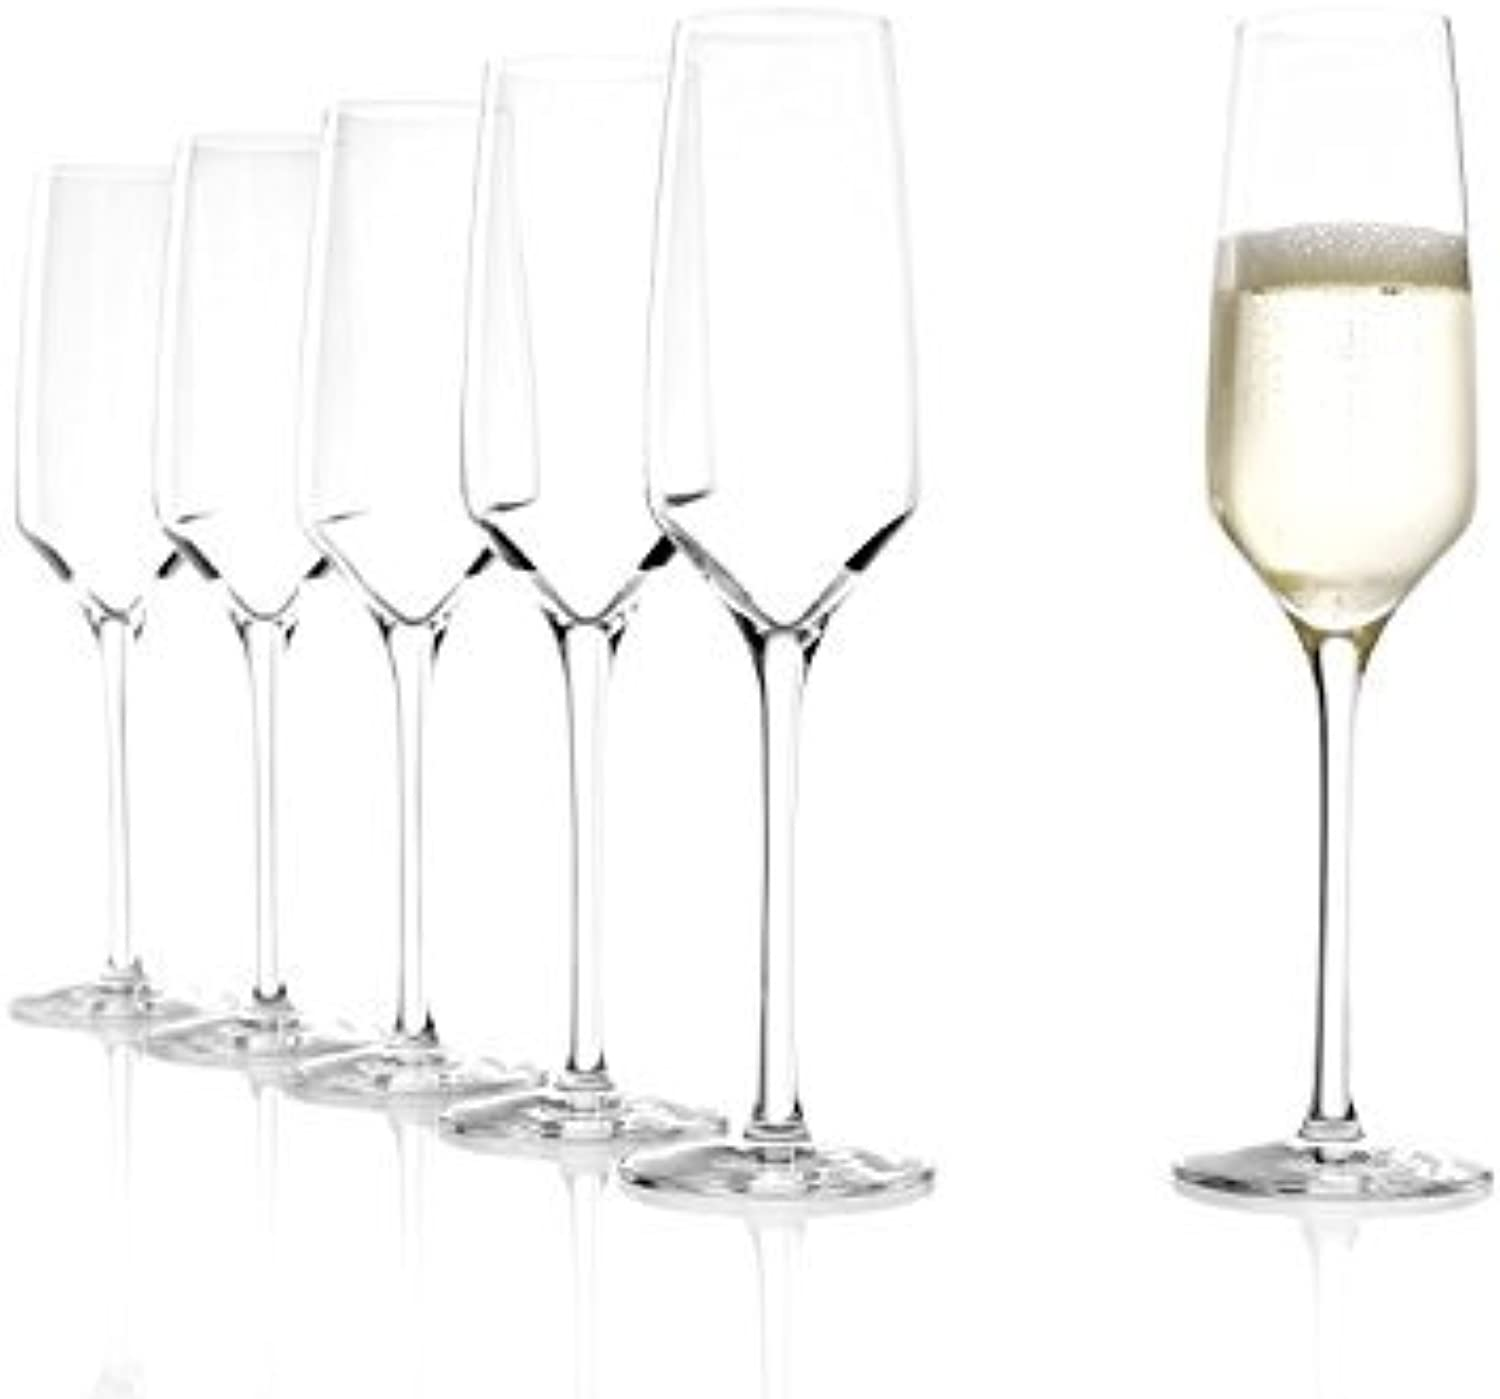 Stolzle Experience Flute Champagne Glasses, set of 6